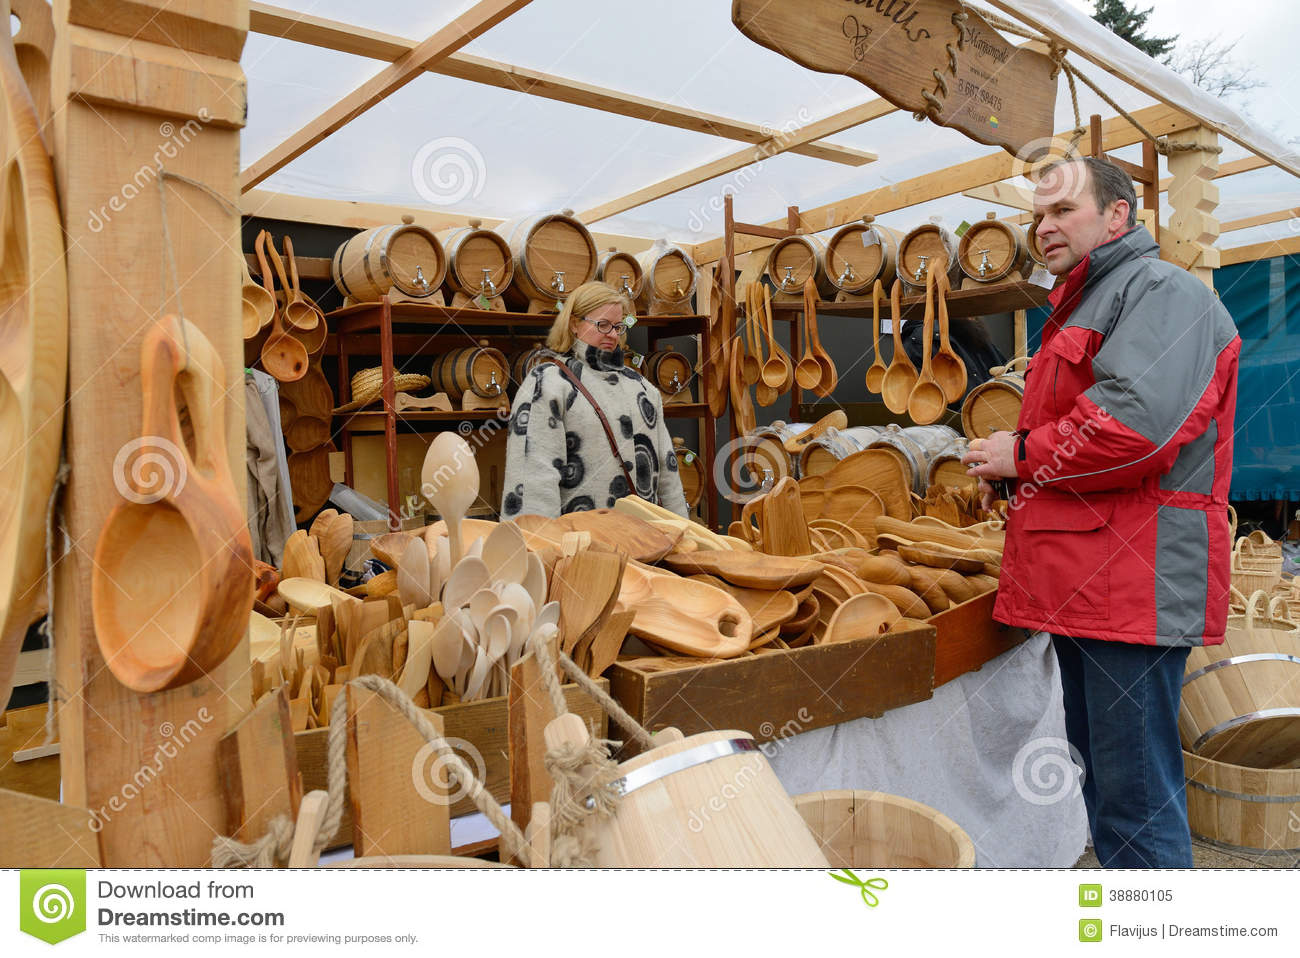 Kaziuko fair on mar 8 2014 in vilnius editorial image for Sell handmade crafts online free